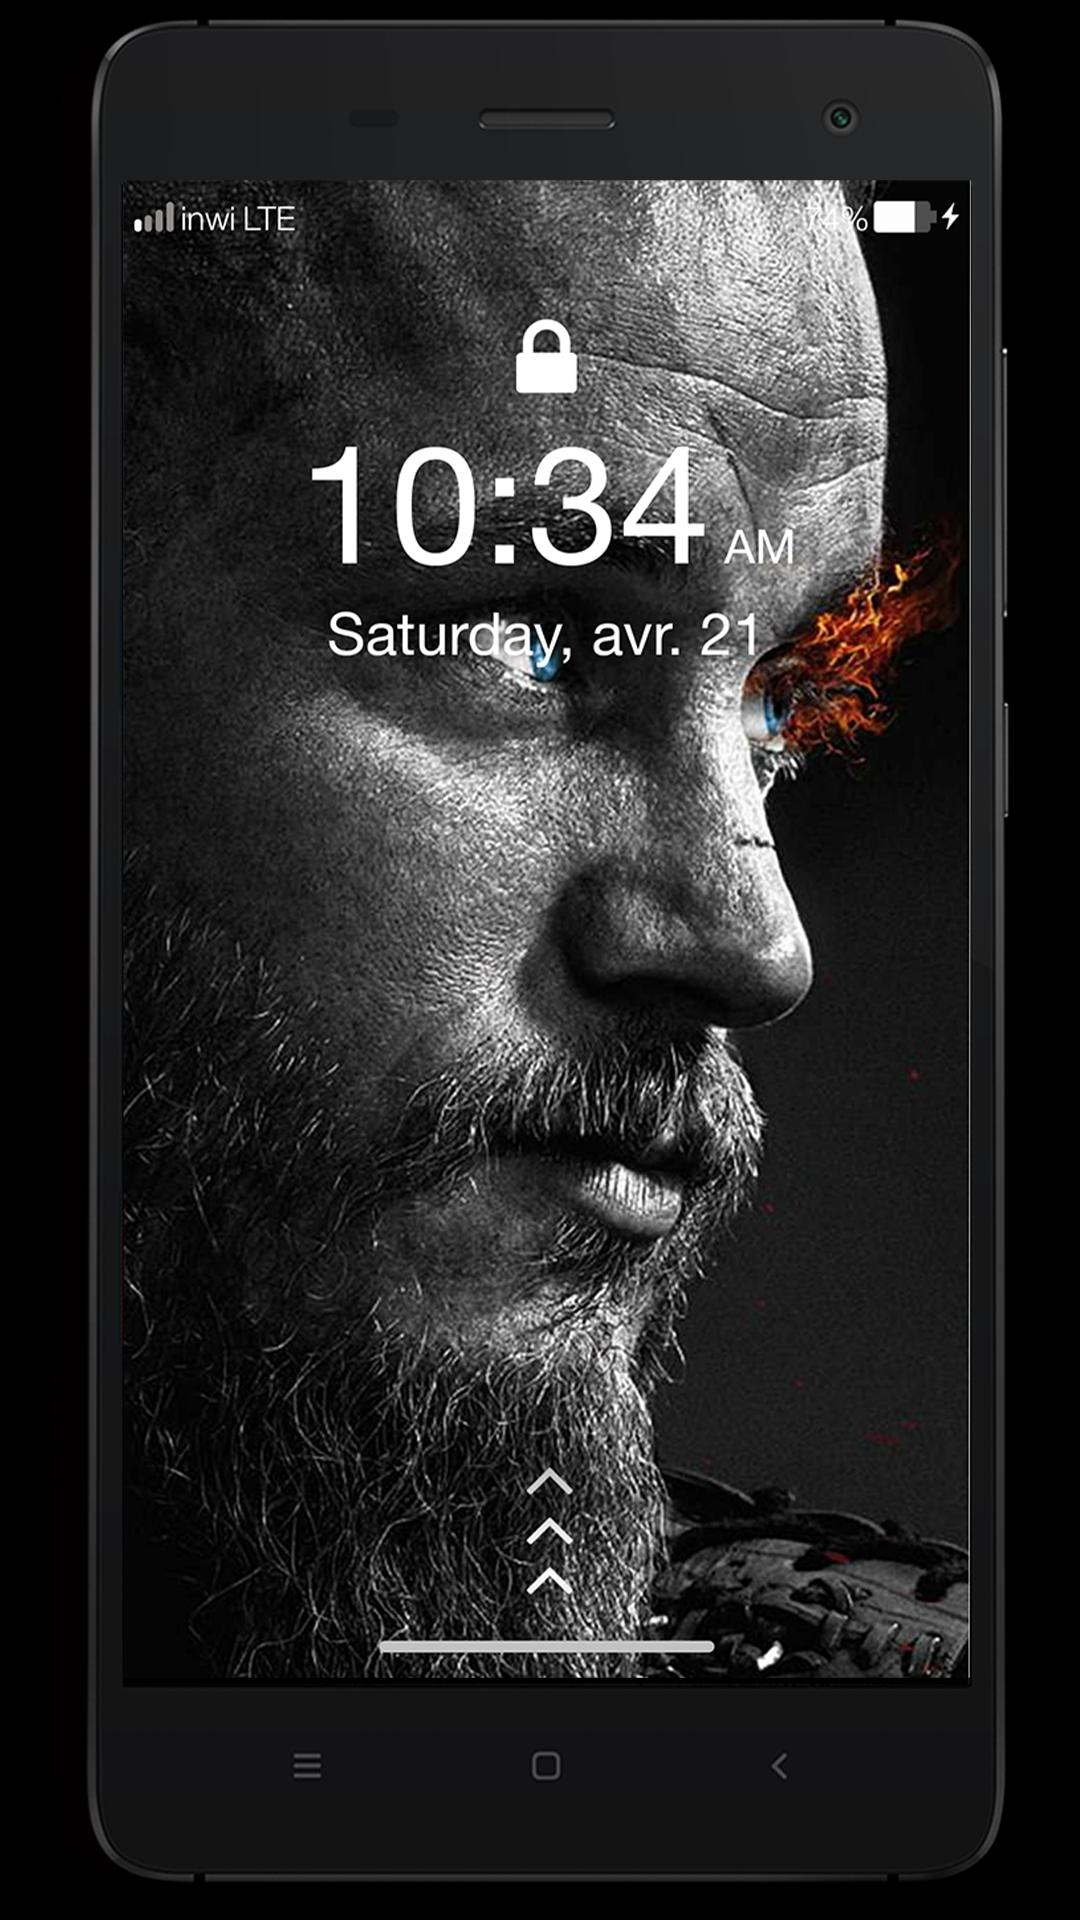 Ragnar Lothbrok Vikings Lock Screen Hd Wallpapers For